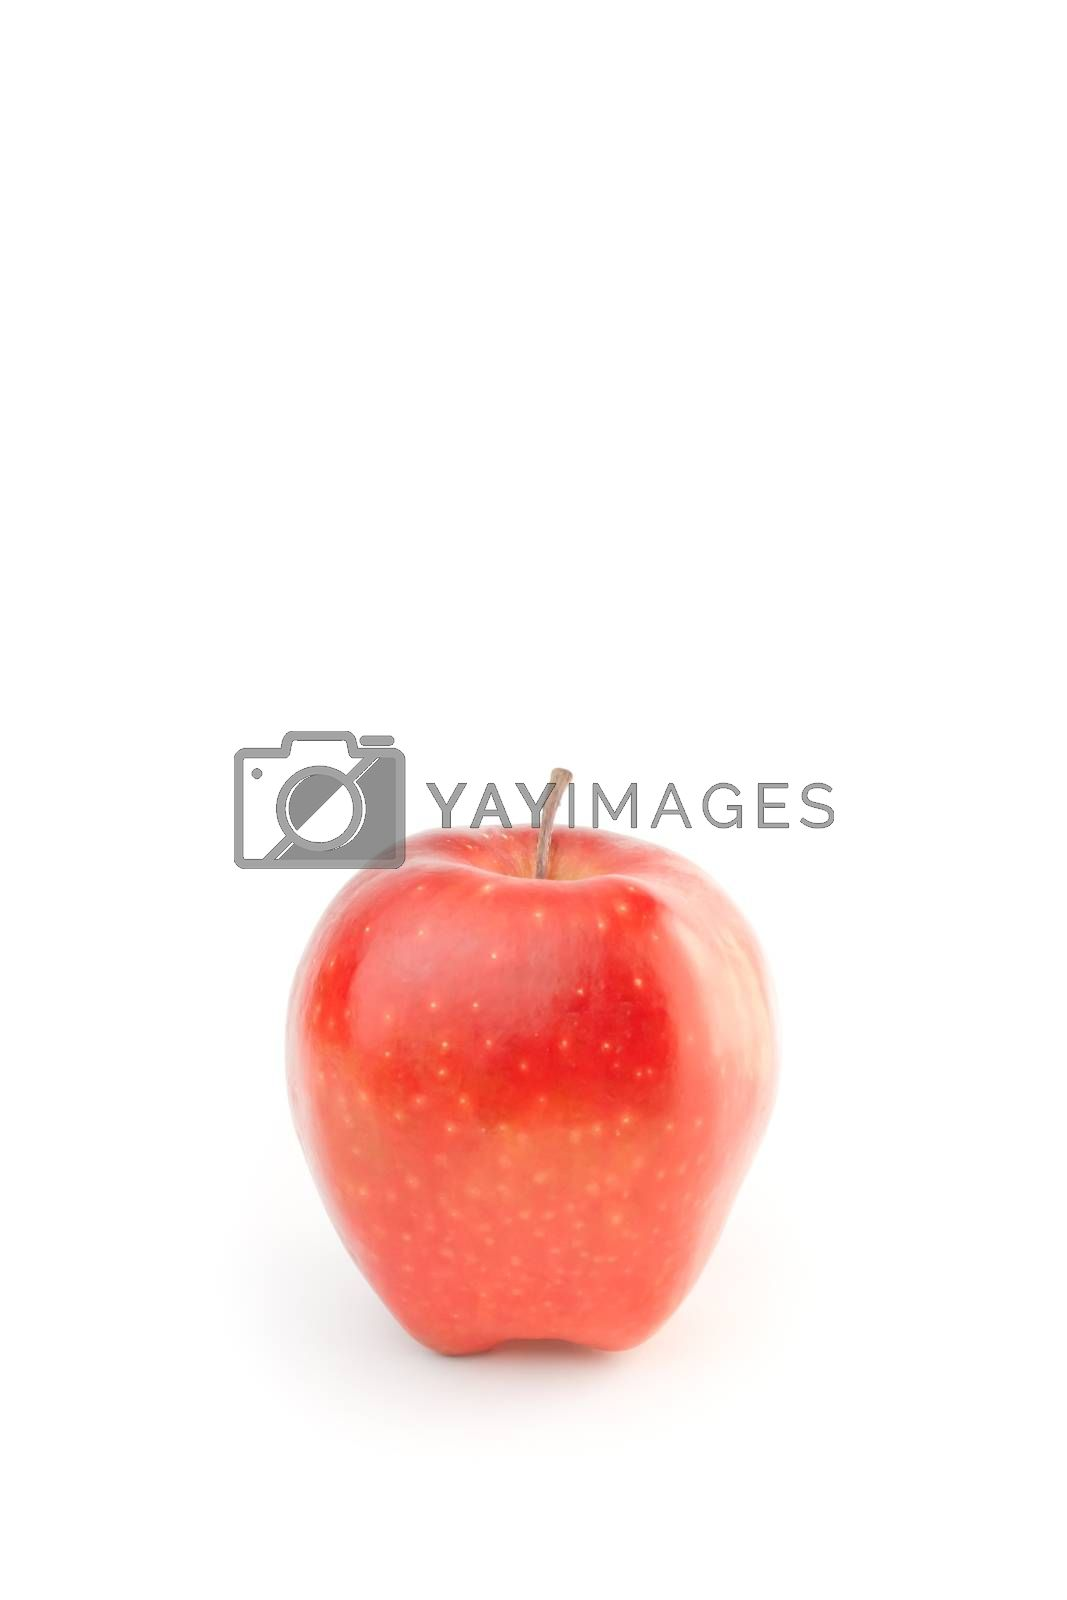 alternative medical care with red apple on white background with space for text